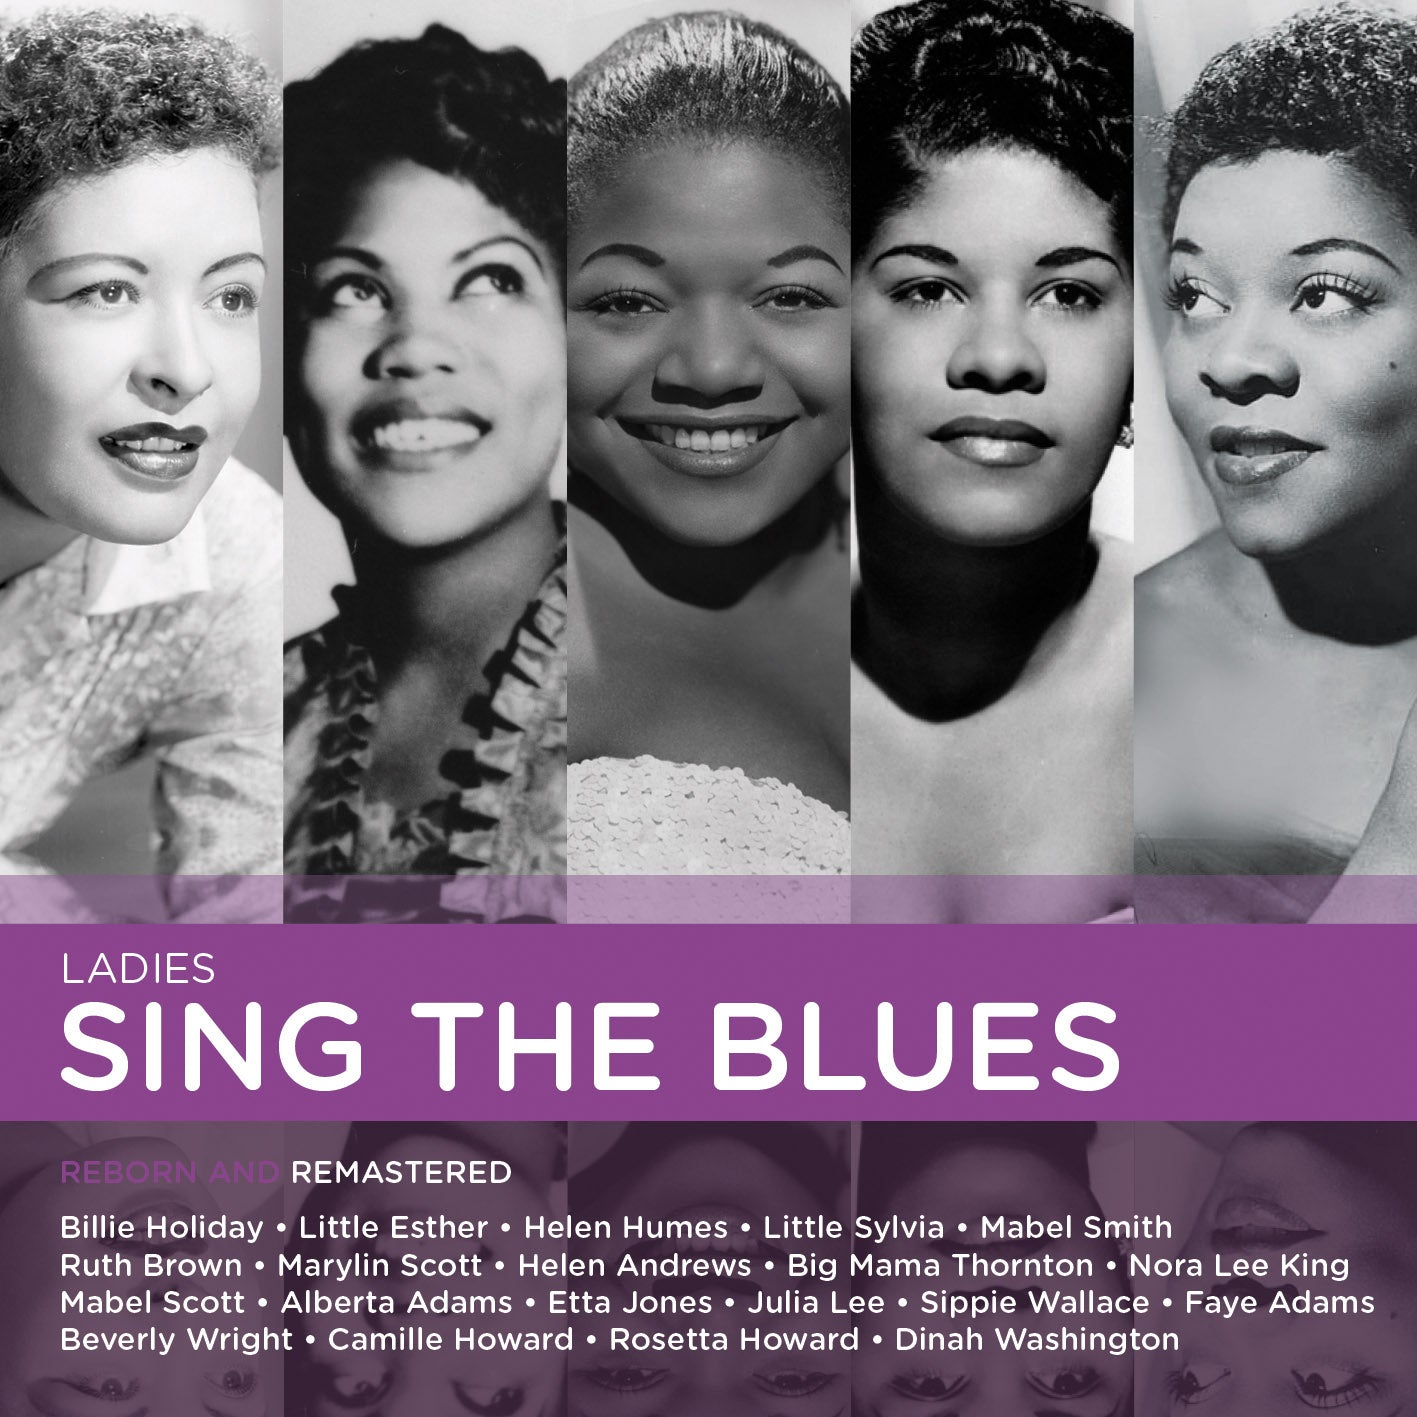 FANFARE274 - LADIES SING THE BLUES.jpg